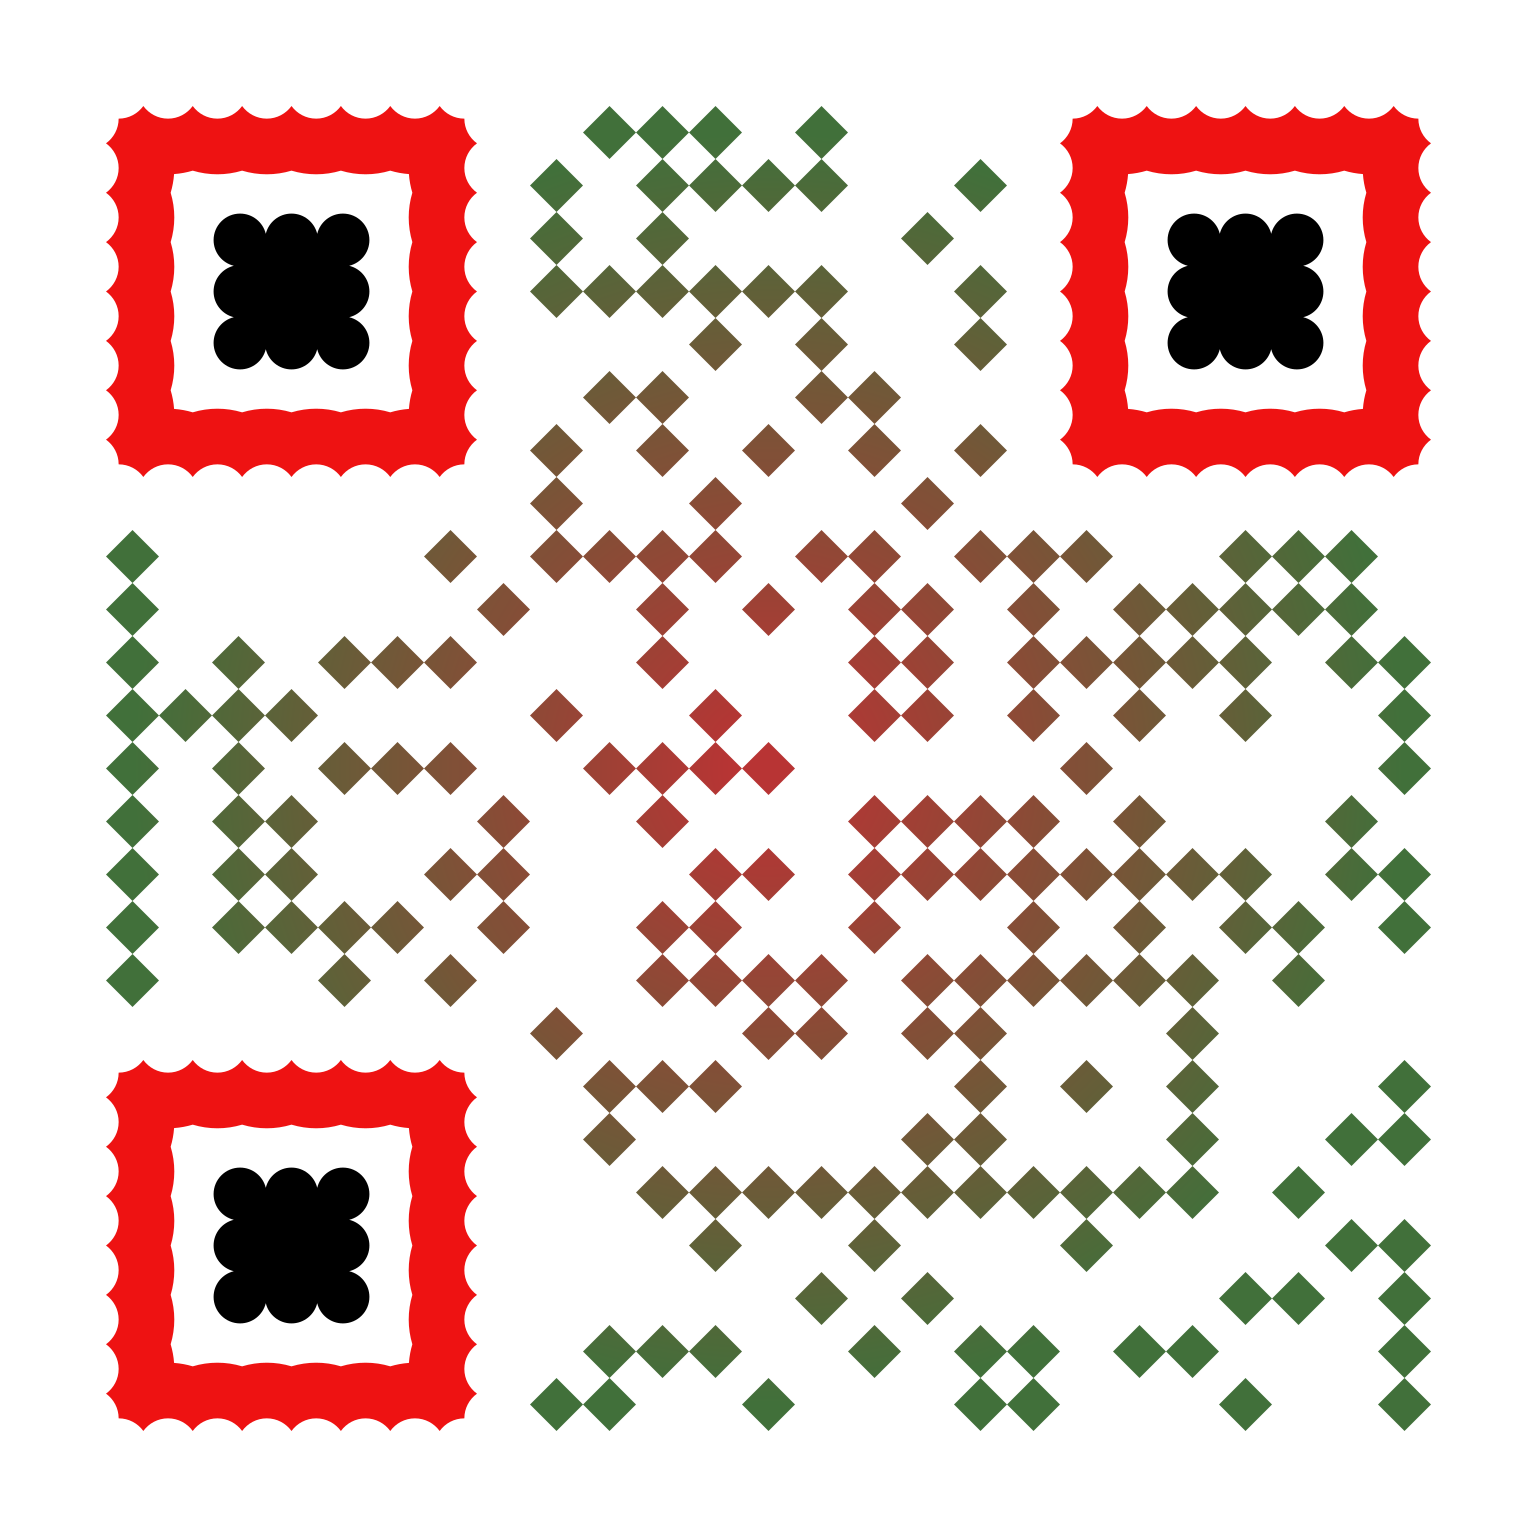 Get Custom-Designed QR CODES of Anything